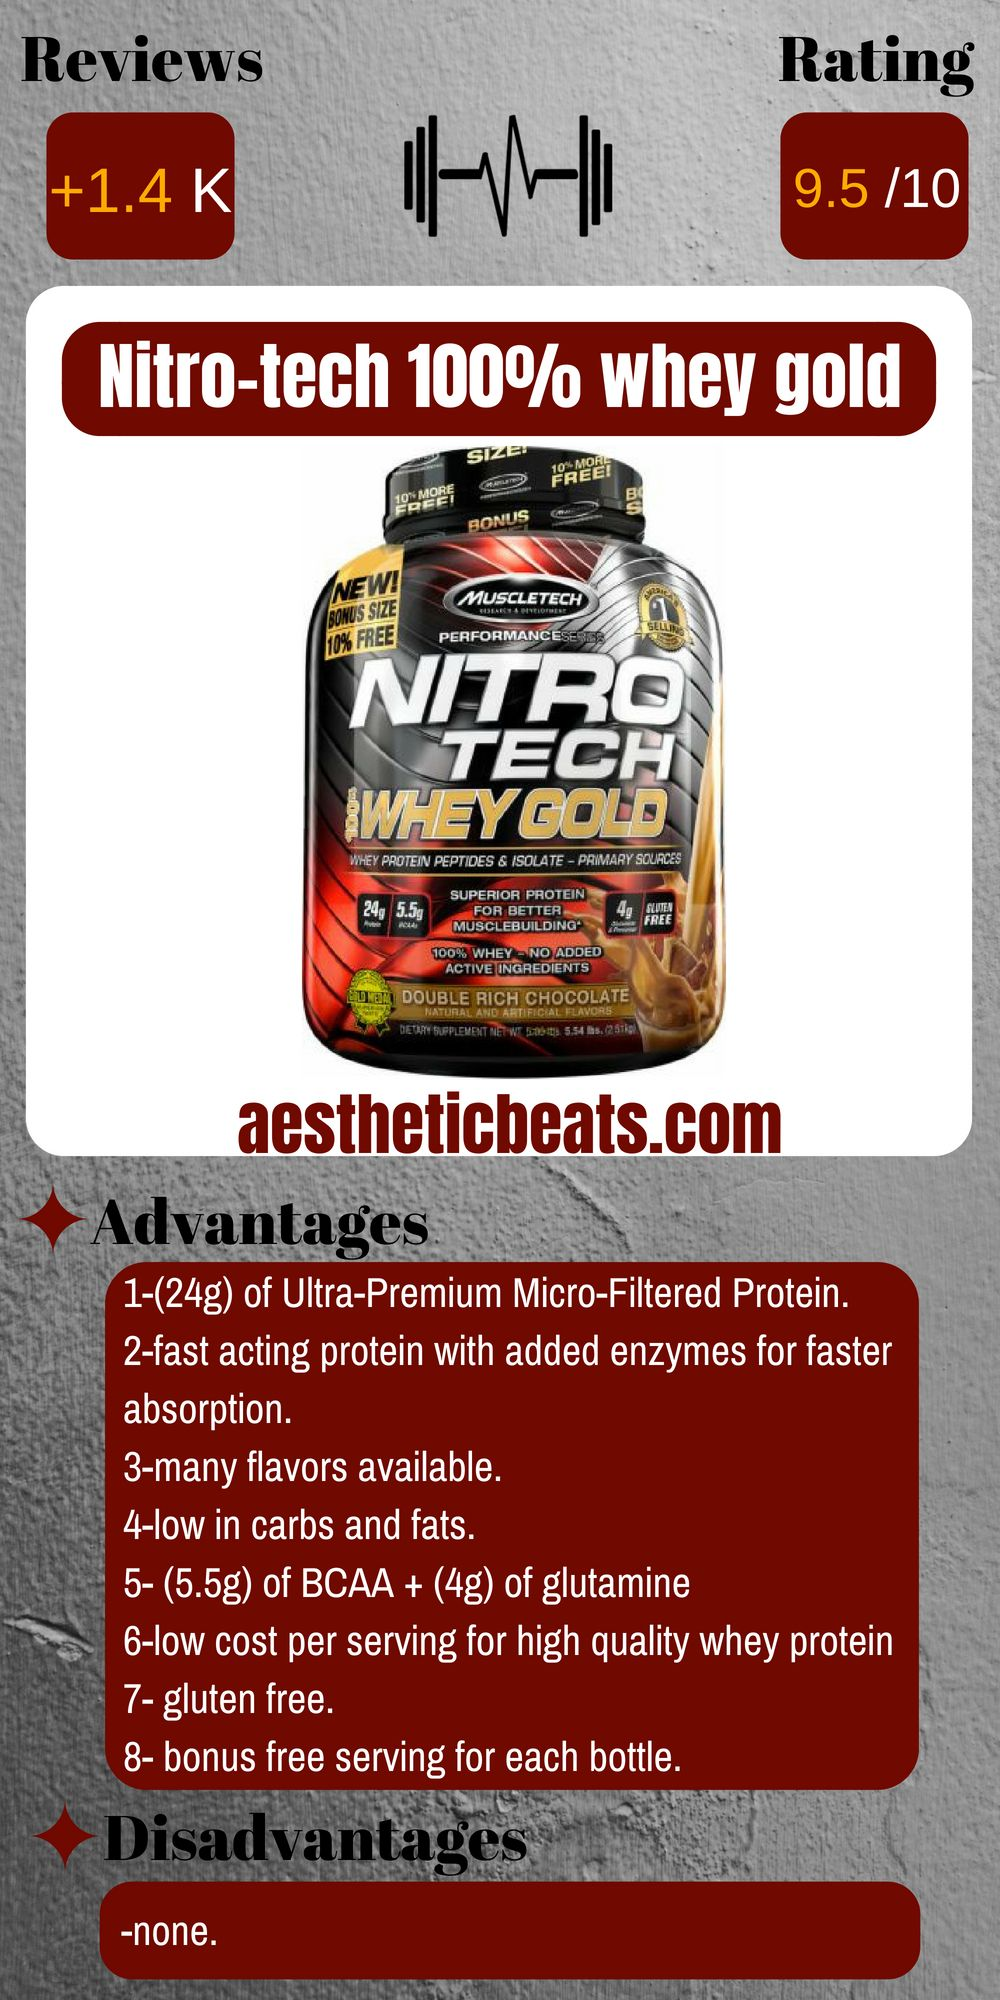 This Is An Infographic Of The Advantages And Disadvantages Nitro Muscletech Nitrotech Whey Gold 6 Lb Tech 100